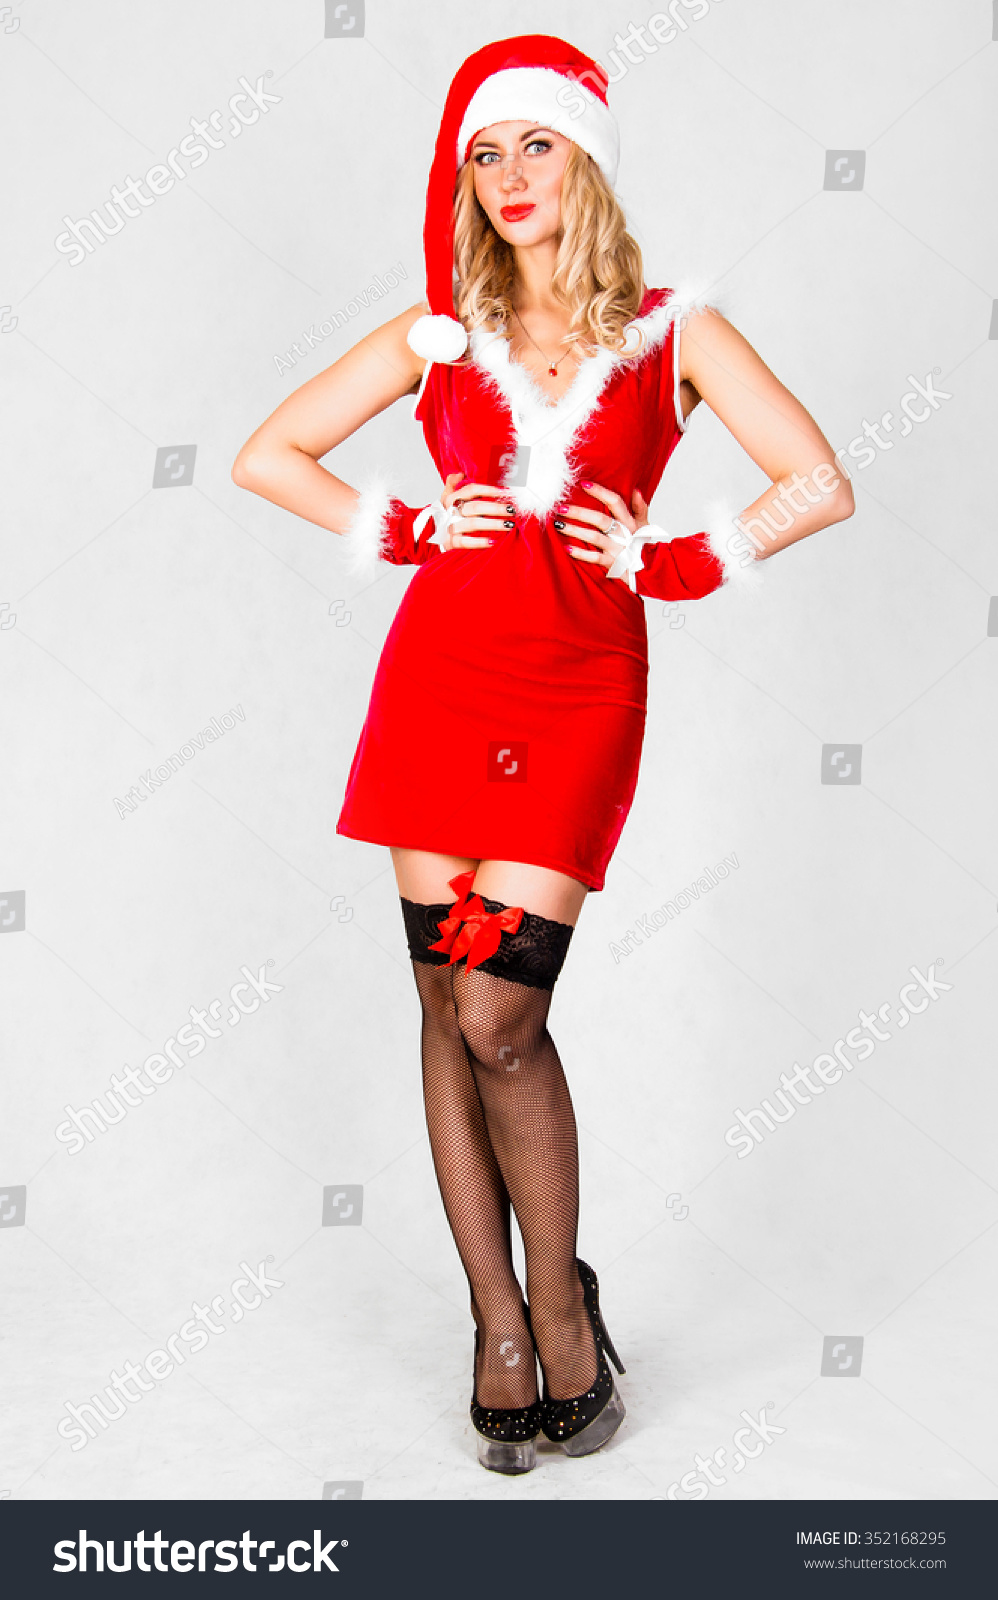 8a9dbc80f1b2 Beautiful Young Woman Christmas Clothes Over Stock Photo (Edit Now ...